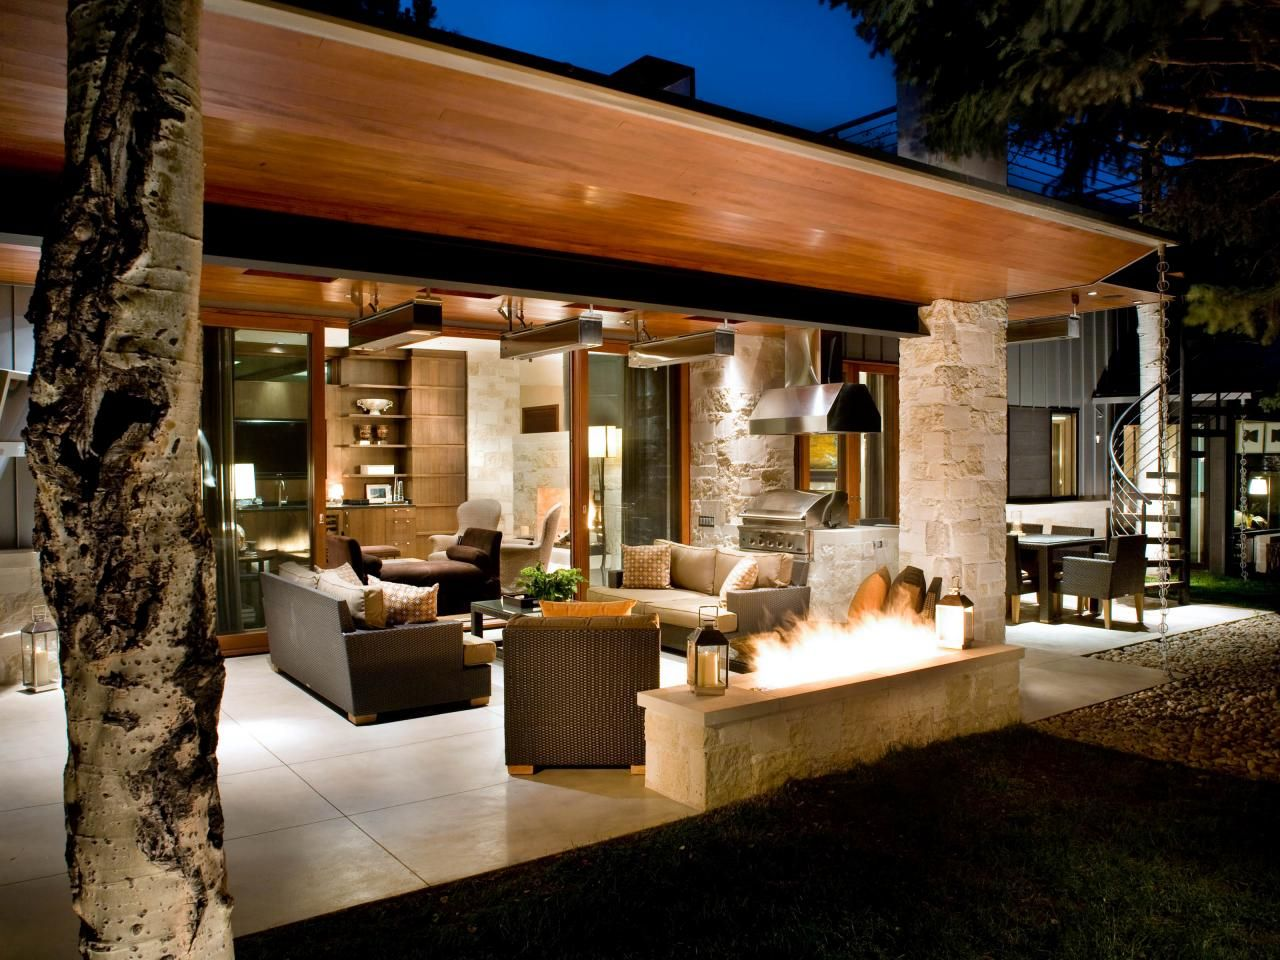 Outdoor Kitchen Lighting Ideas Pictures Tips Advice Outdoor Kitchen Lighting Outdoor Kitchen Ranch Style Home